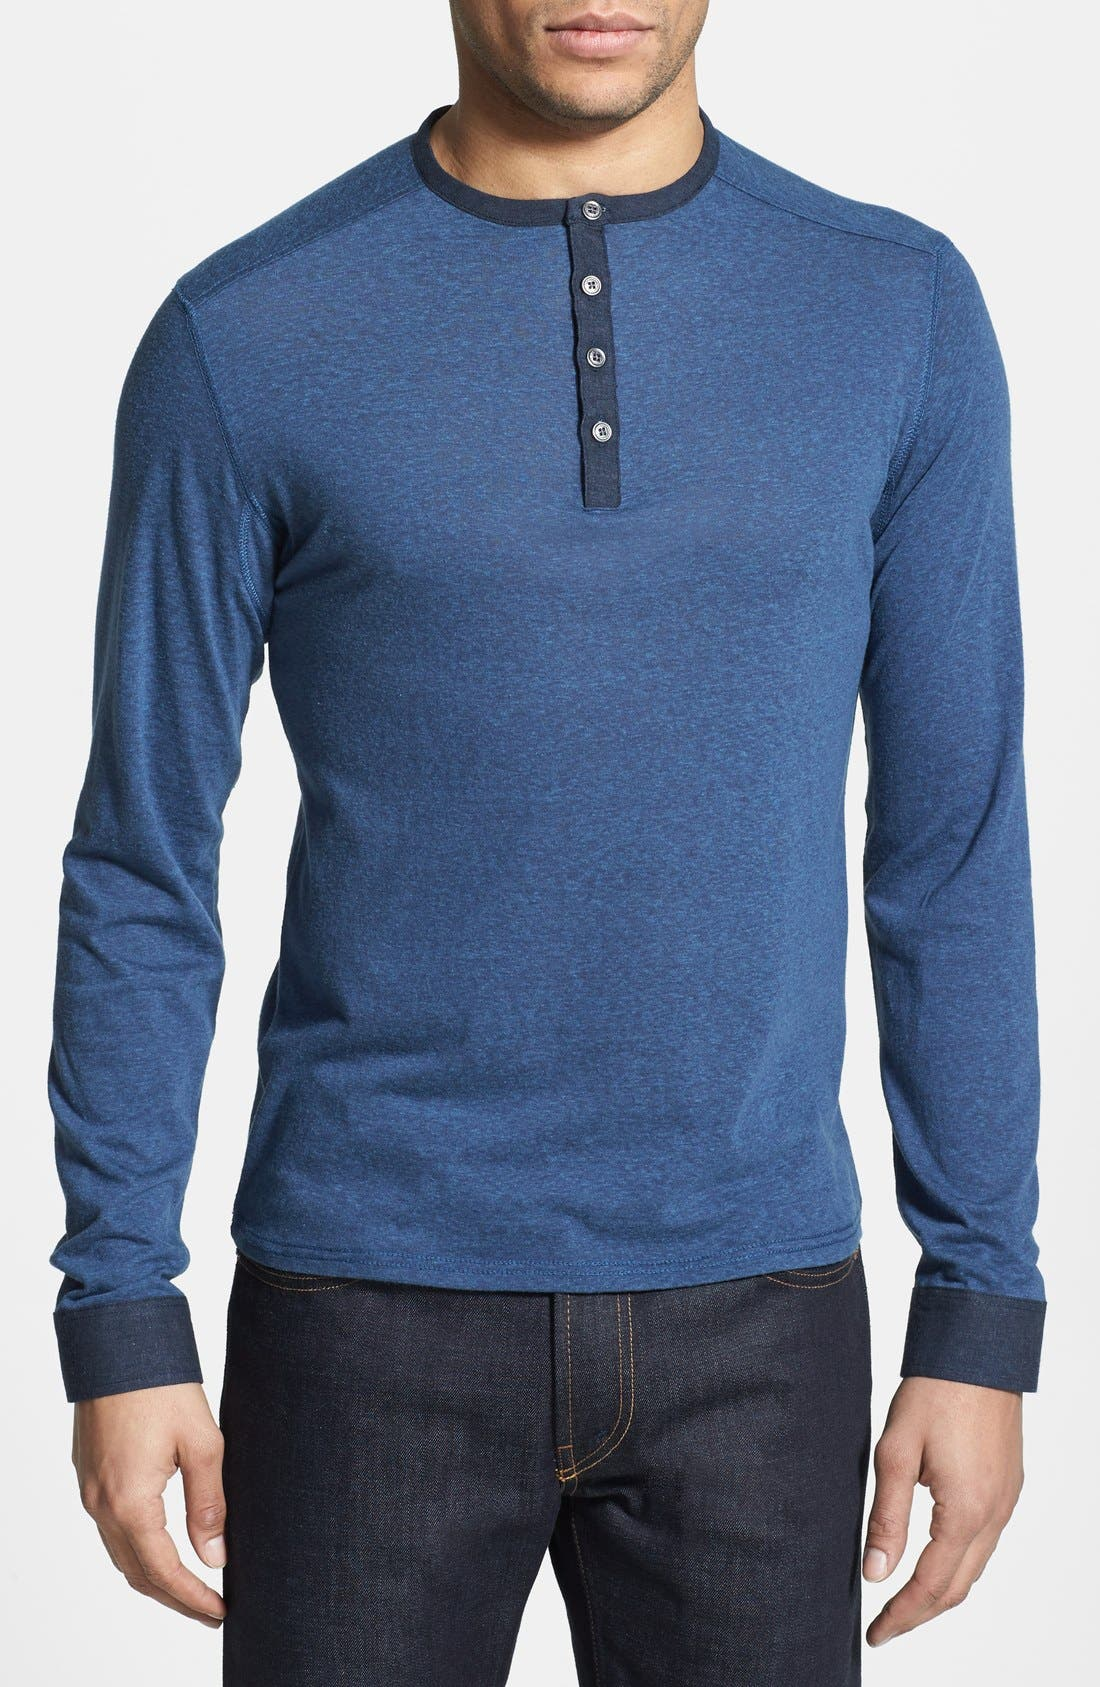 Alternate Image 1 Selected - Vince Camuto Slim Fit Knit Henley